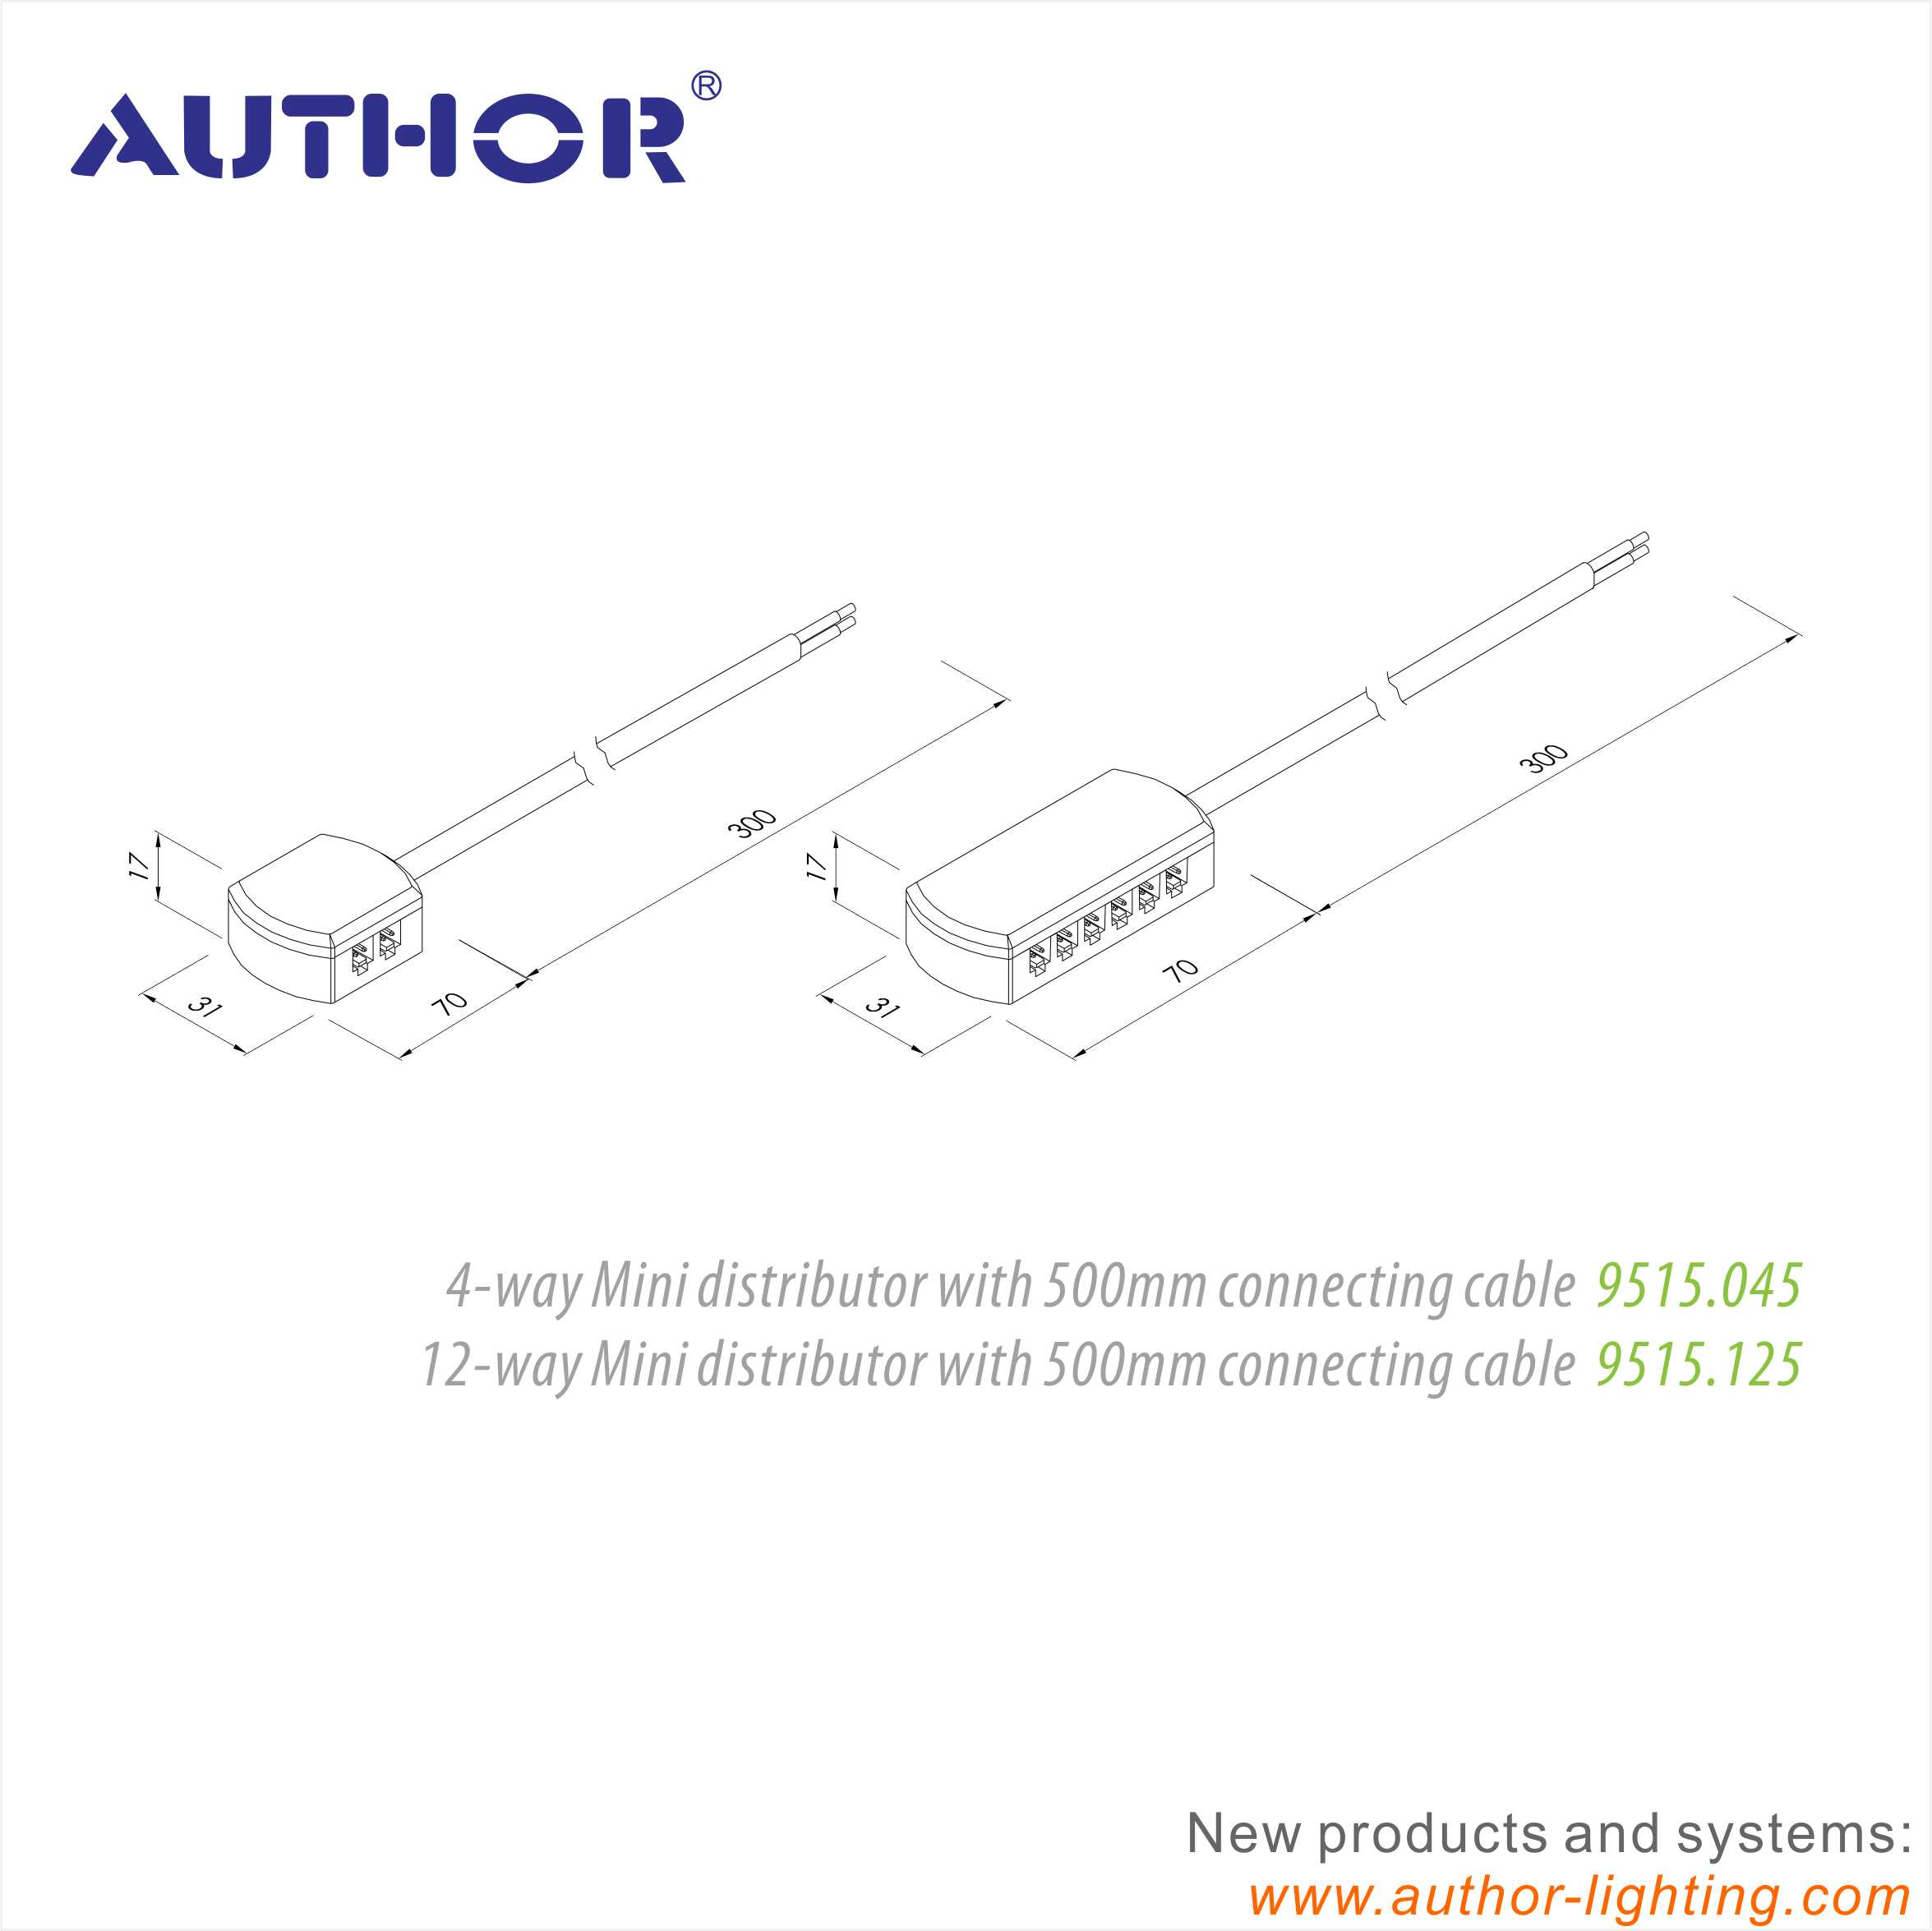 LED Lighting Connector 4-way or 12-way for LED Driver 9515